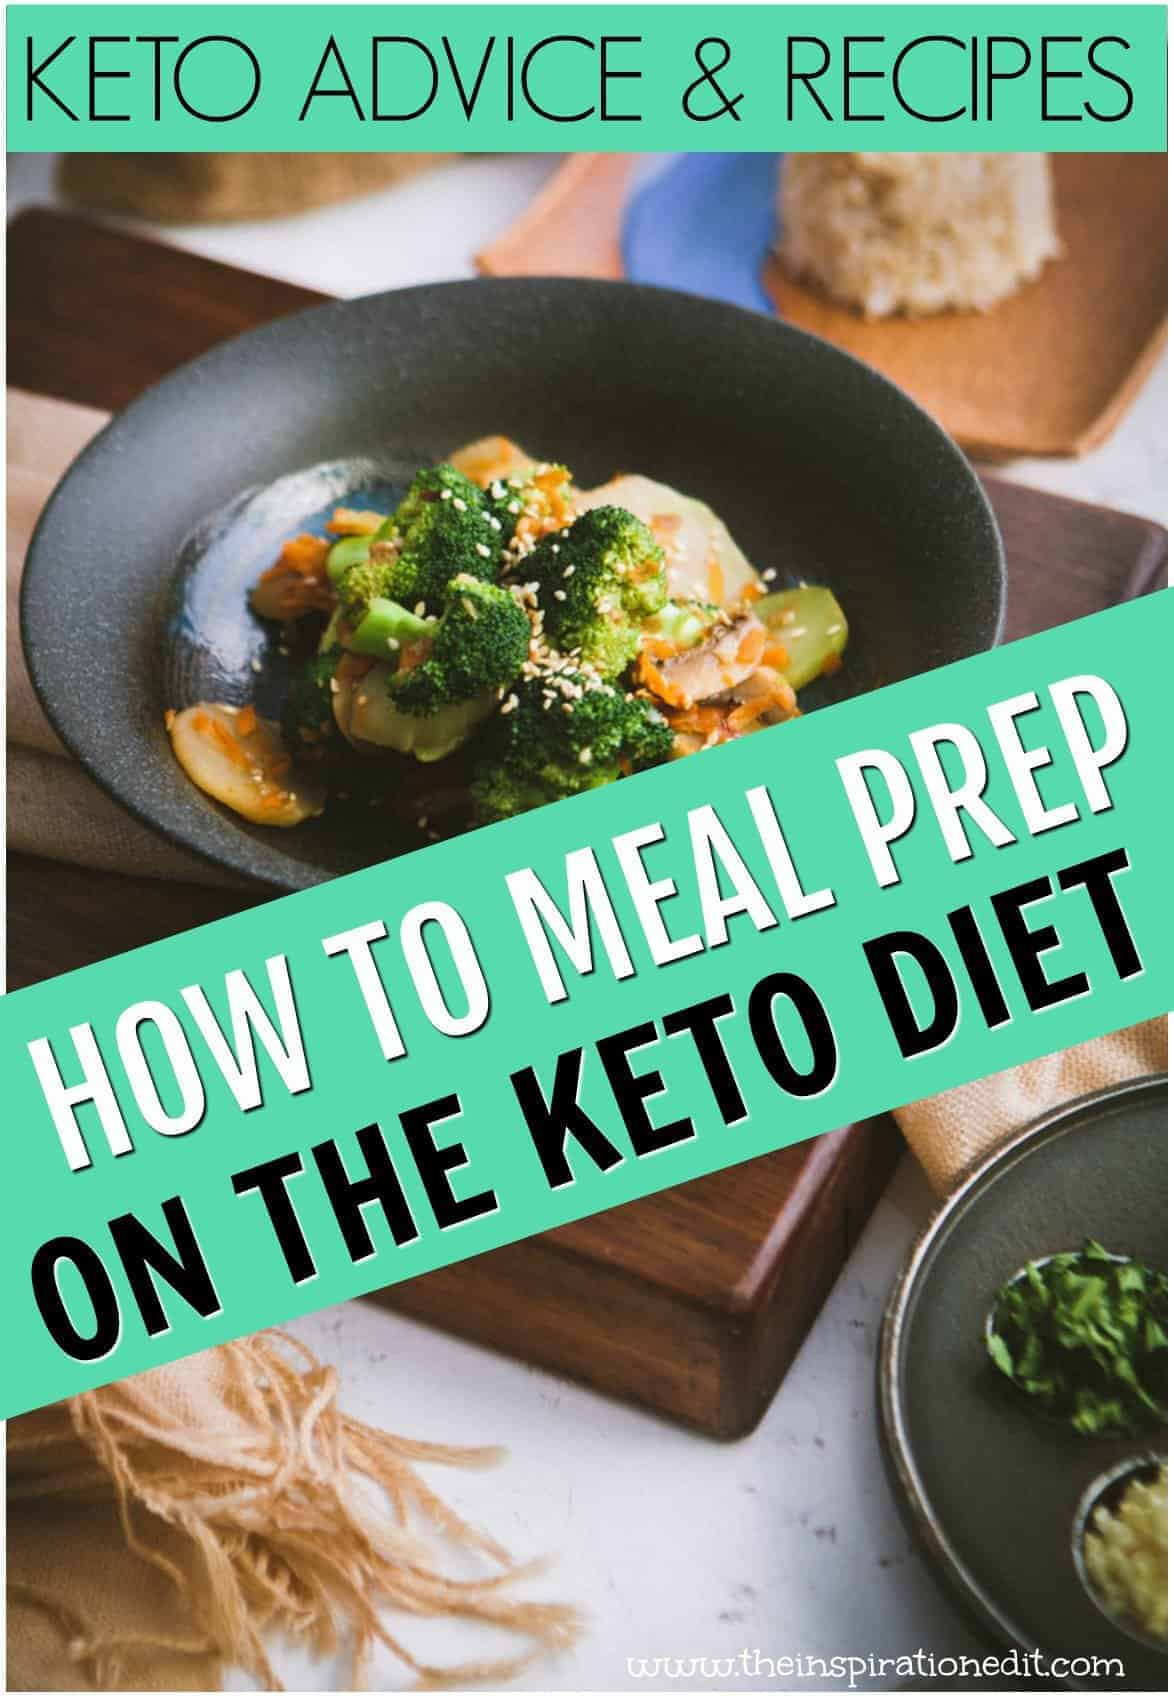 KETO MEAL PLANNING ADVICE AND RECIPES